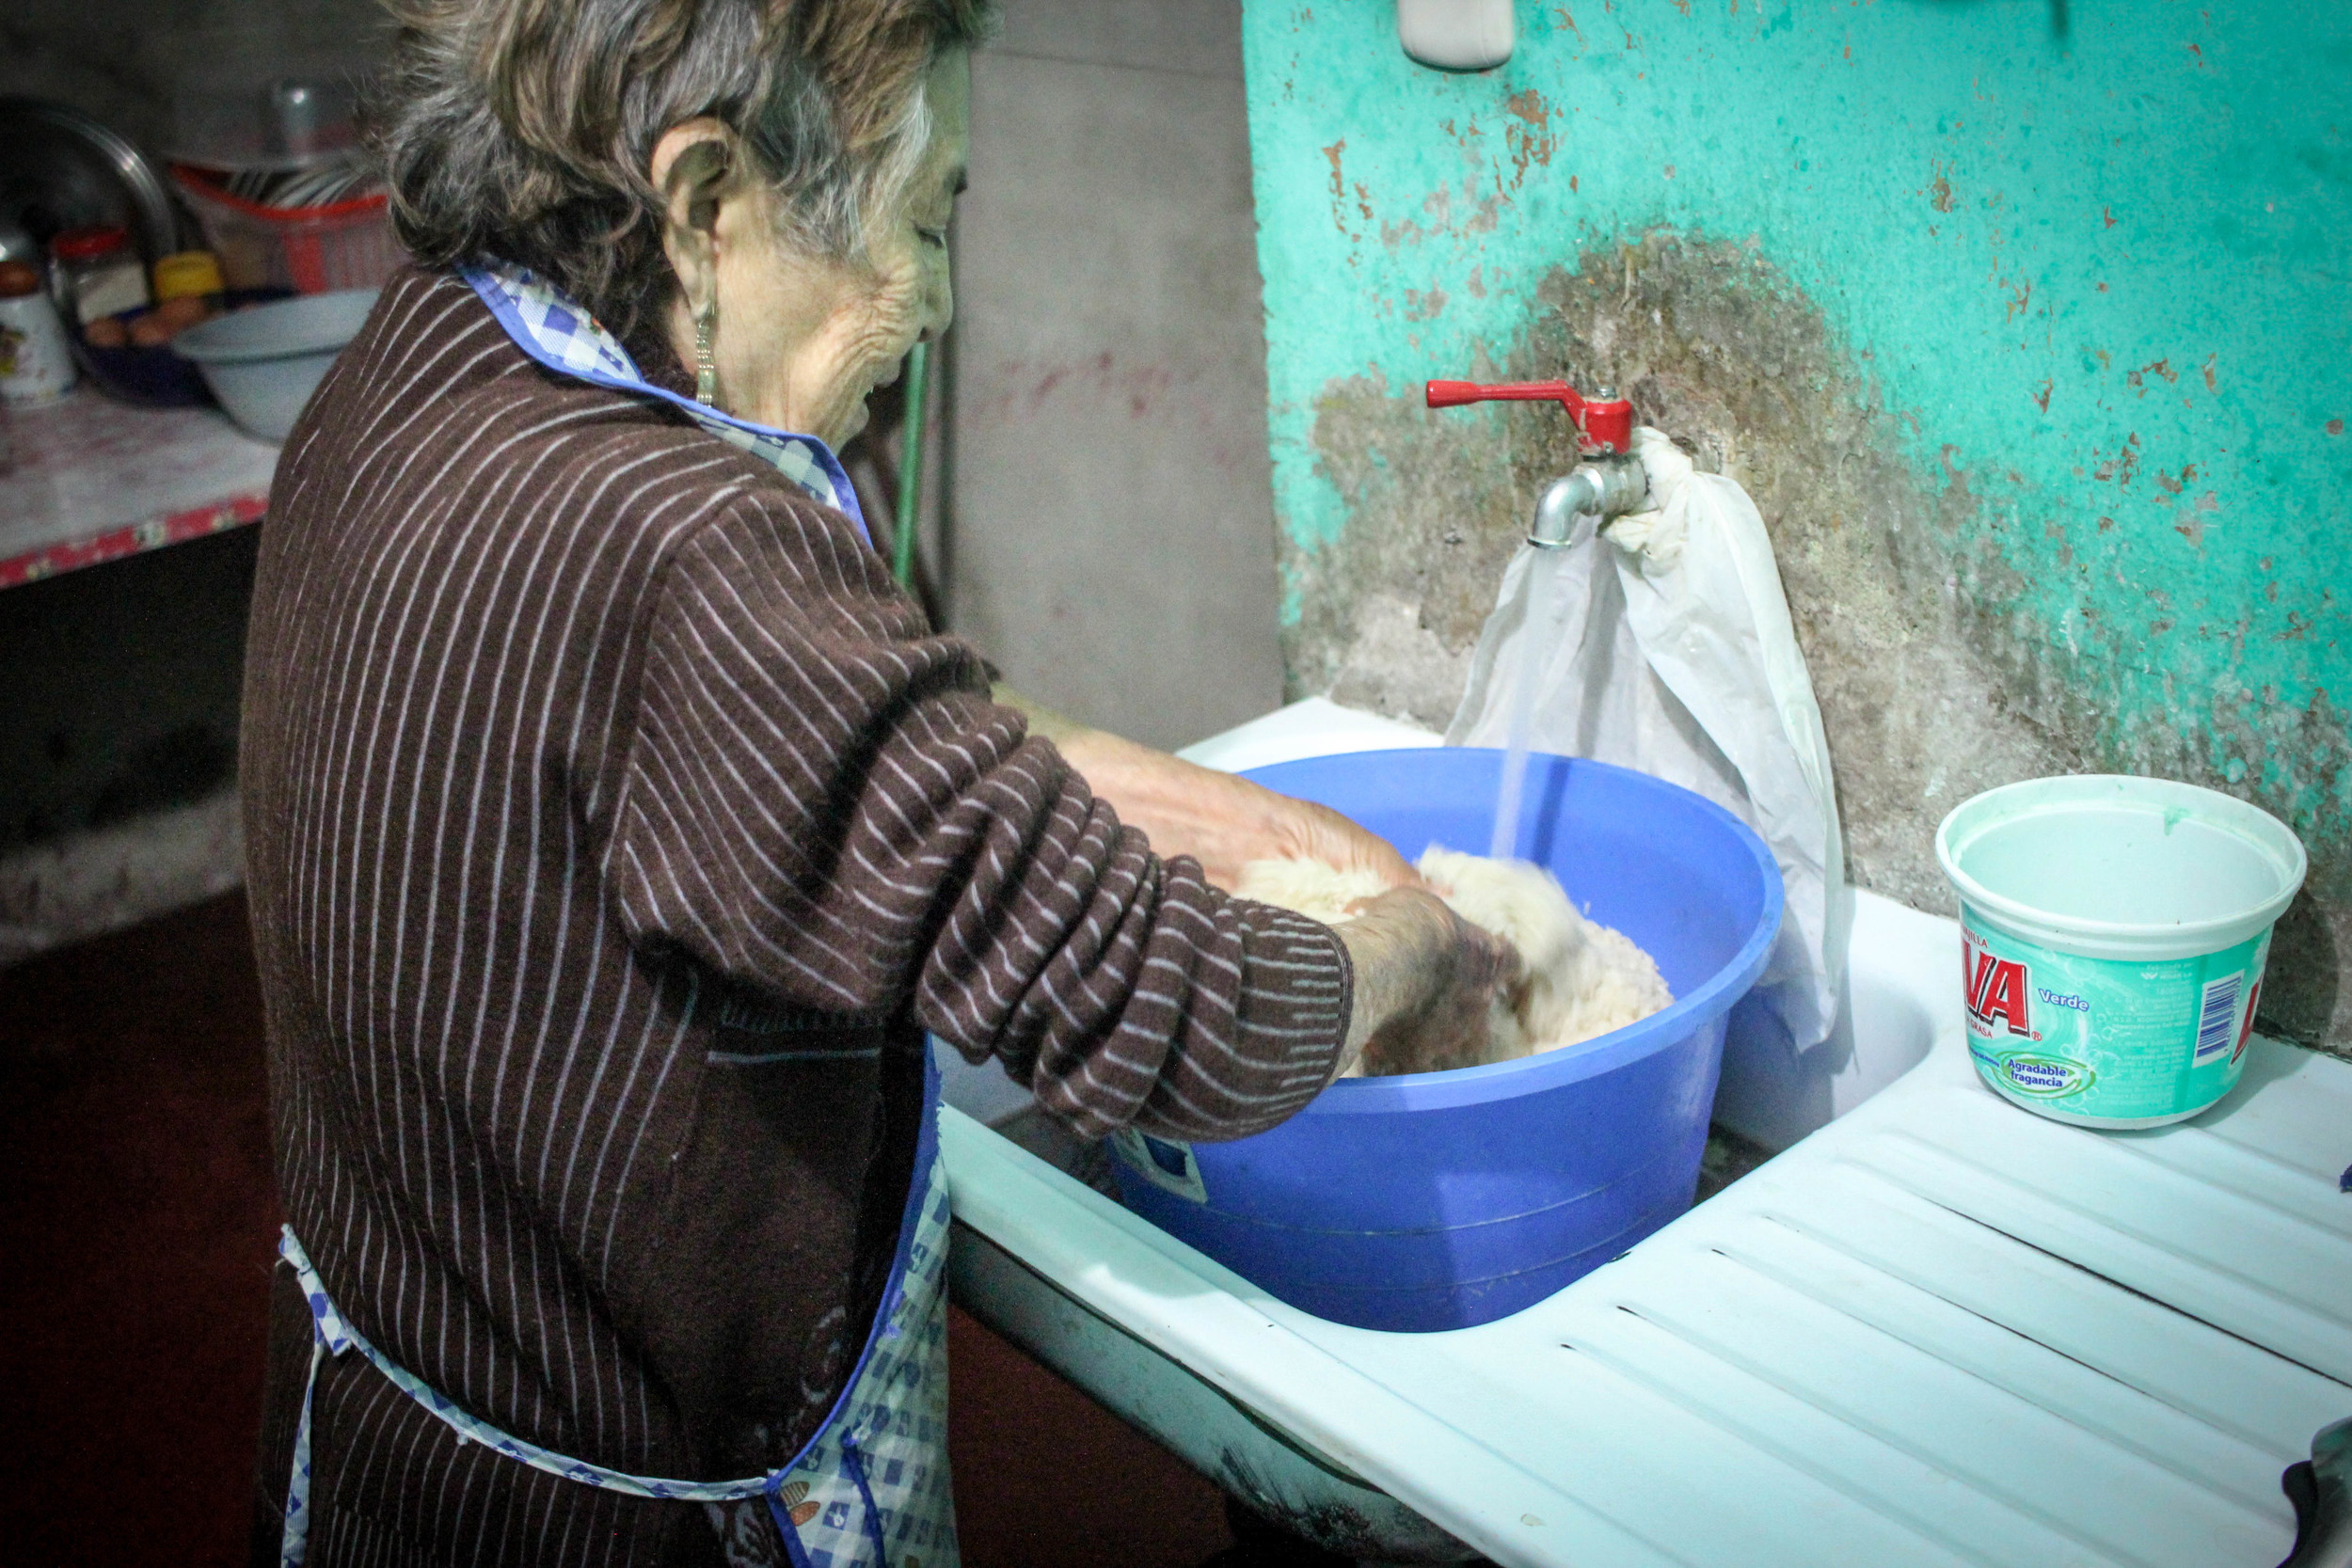 Esperanza washing 4 kilos of rice.She cooks that much rice every day!